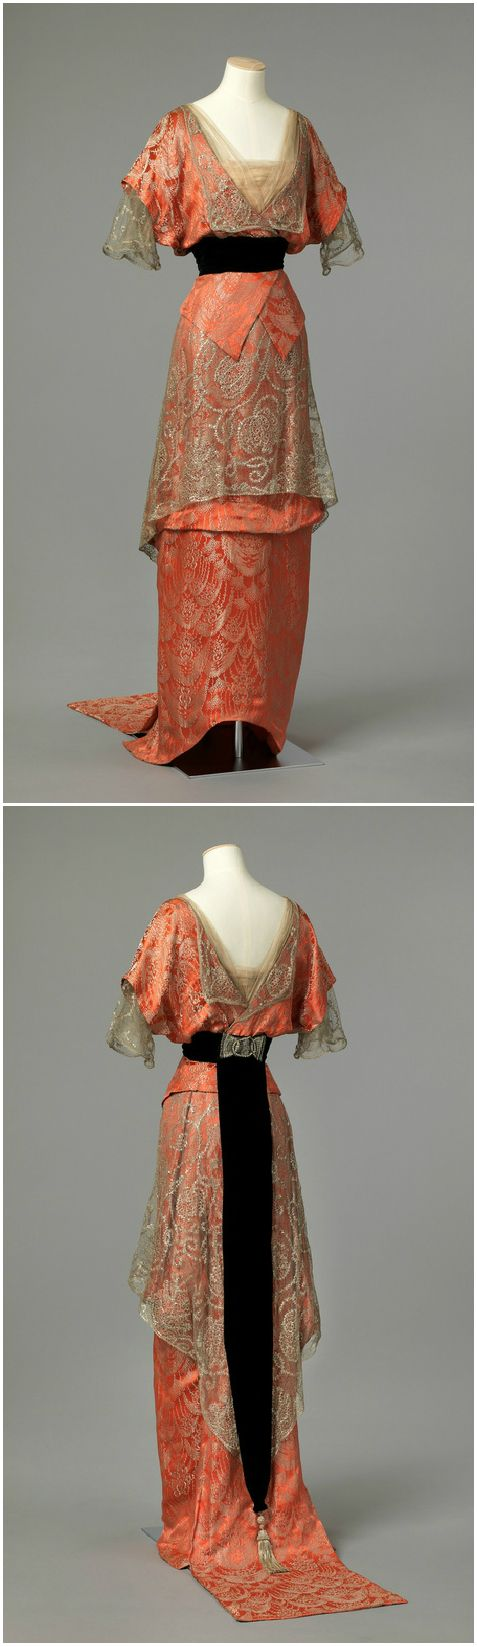 Evening dress, dated between 1913 and 1914, at the National Museum of Art, Architecture and Design. See: http://digitaltmuseum.no/things/aftenkjole/NMK-D/OK-1962-0008?js=1&owner_filter=NMK-D&query=kjole&rows=24&search_context=1&sort_by=&js=1&page=3&count=160&pos=55